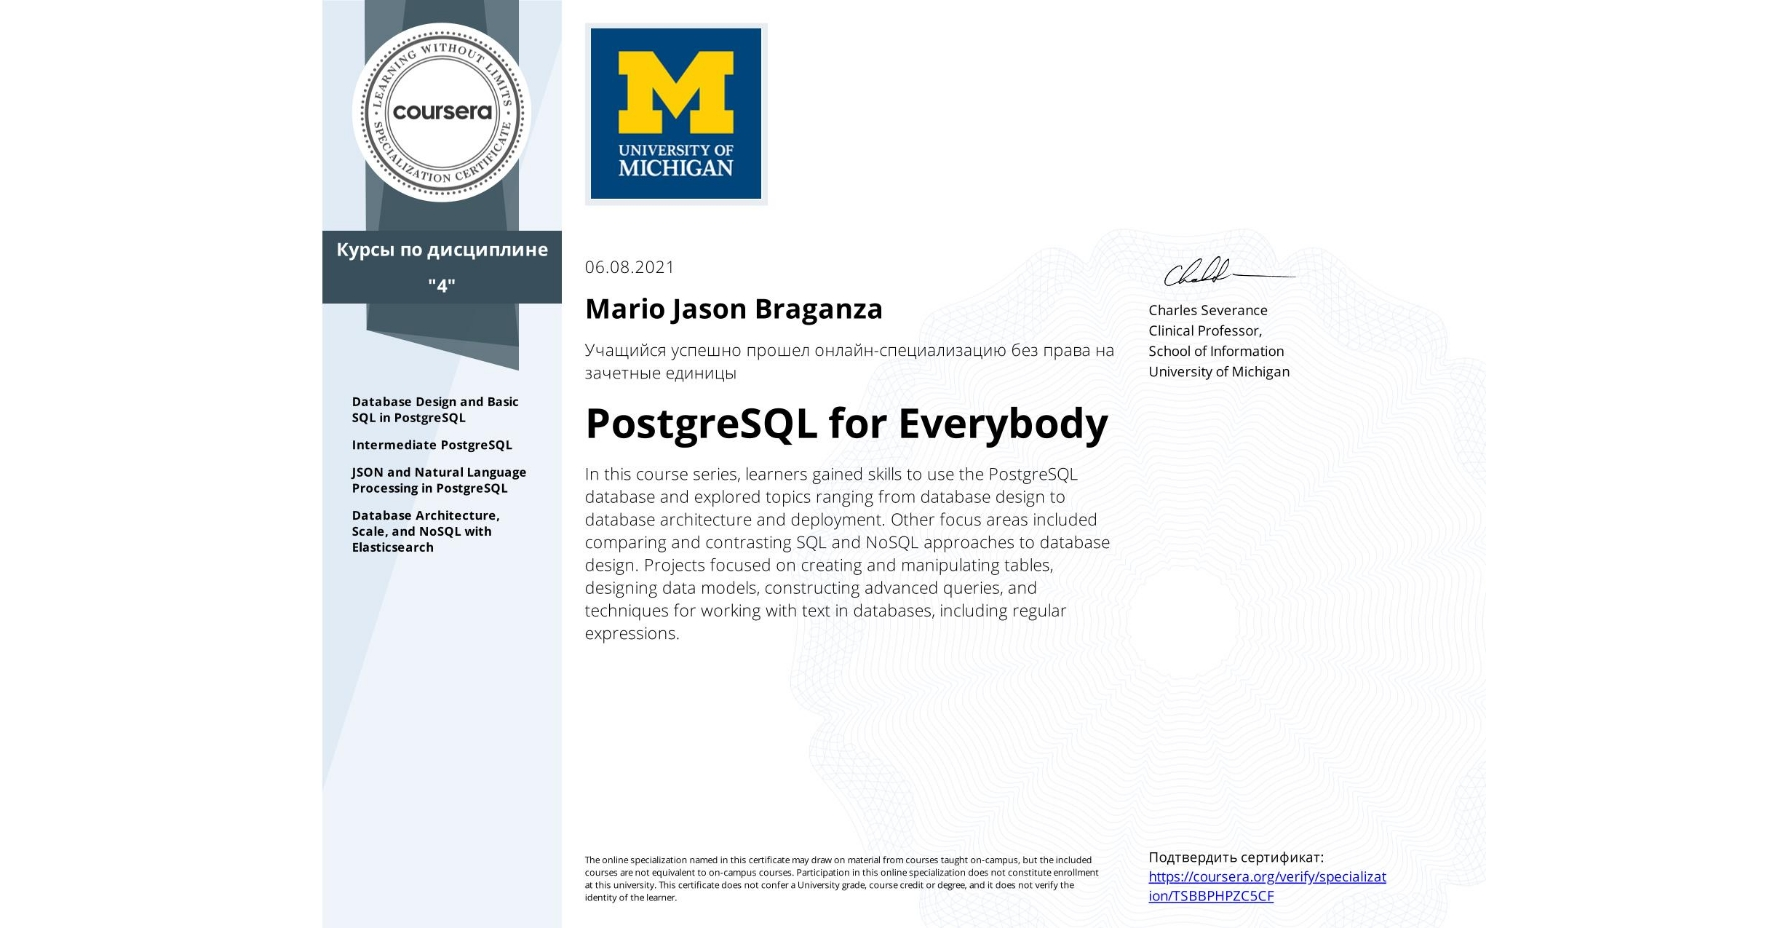 View certificate for Mario Jason Braganza, PostgreSQL for Everybody, offered through Coursera. In this course series, learners gained skills to use the PostgreSQL database and explored topics ranging from database design to database architecture and deployment. Other focus areas included comparing and contrasting SQL and NoSQL approaches to database design. Projects focused on creating and manipulating tables, designing data models, constructing advanced queries, and techniques for working with text in databases, including regular expressions.